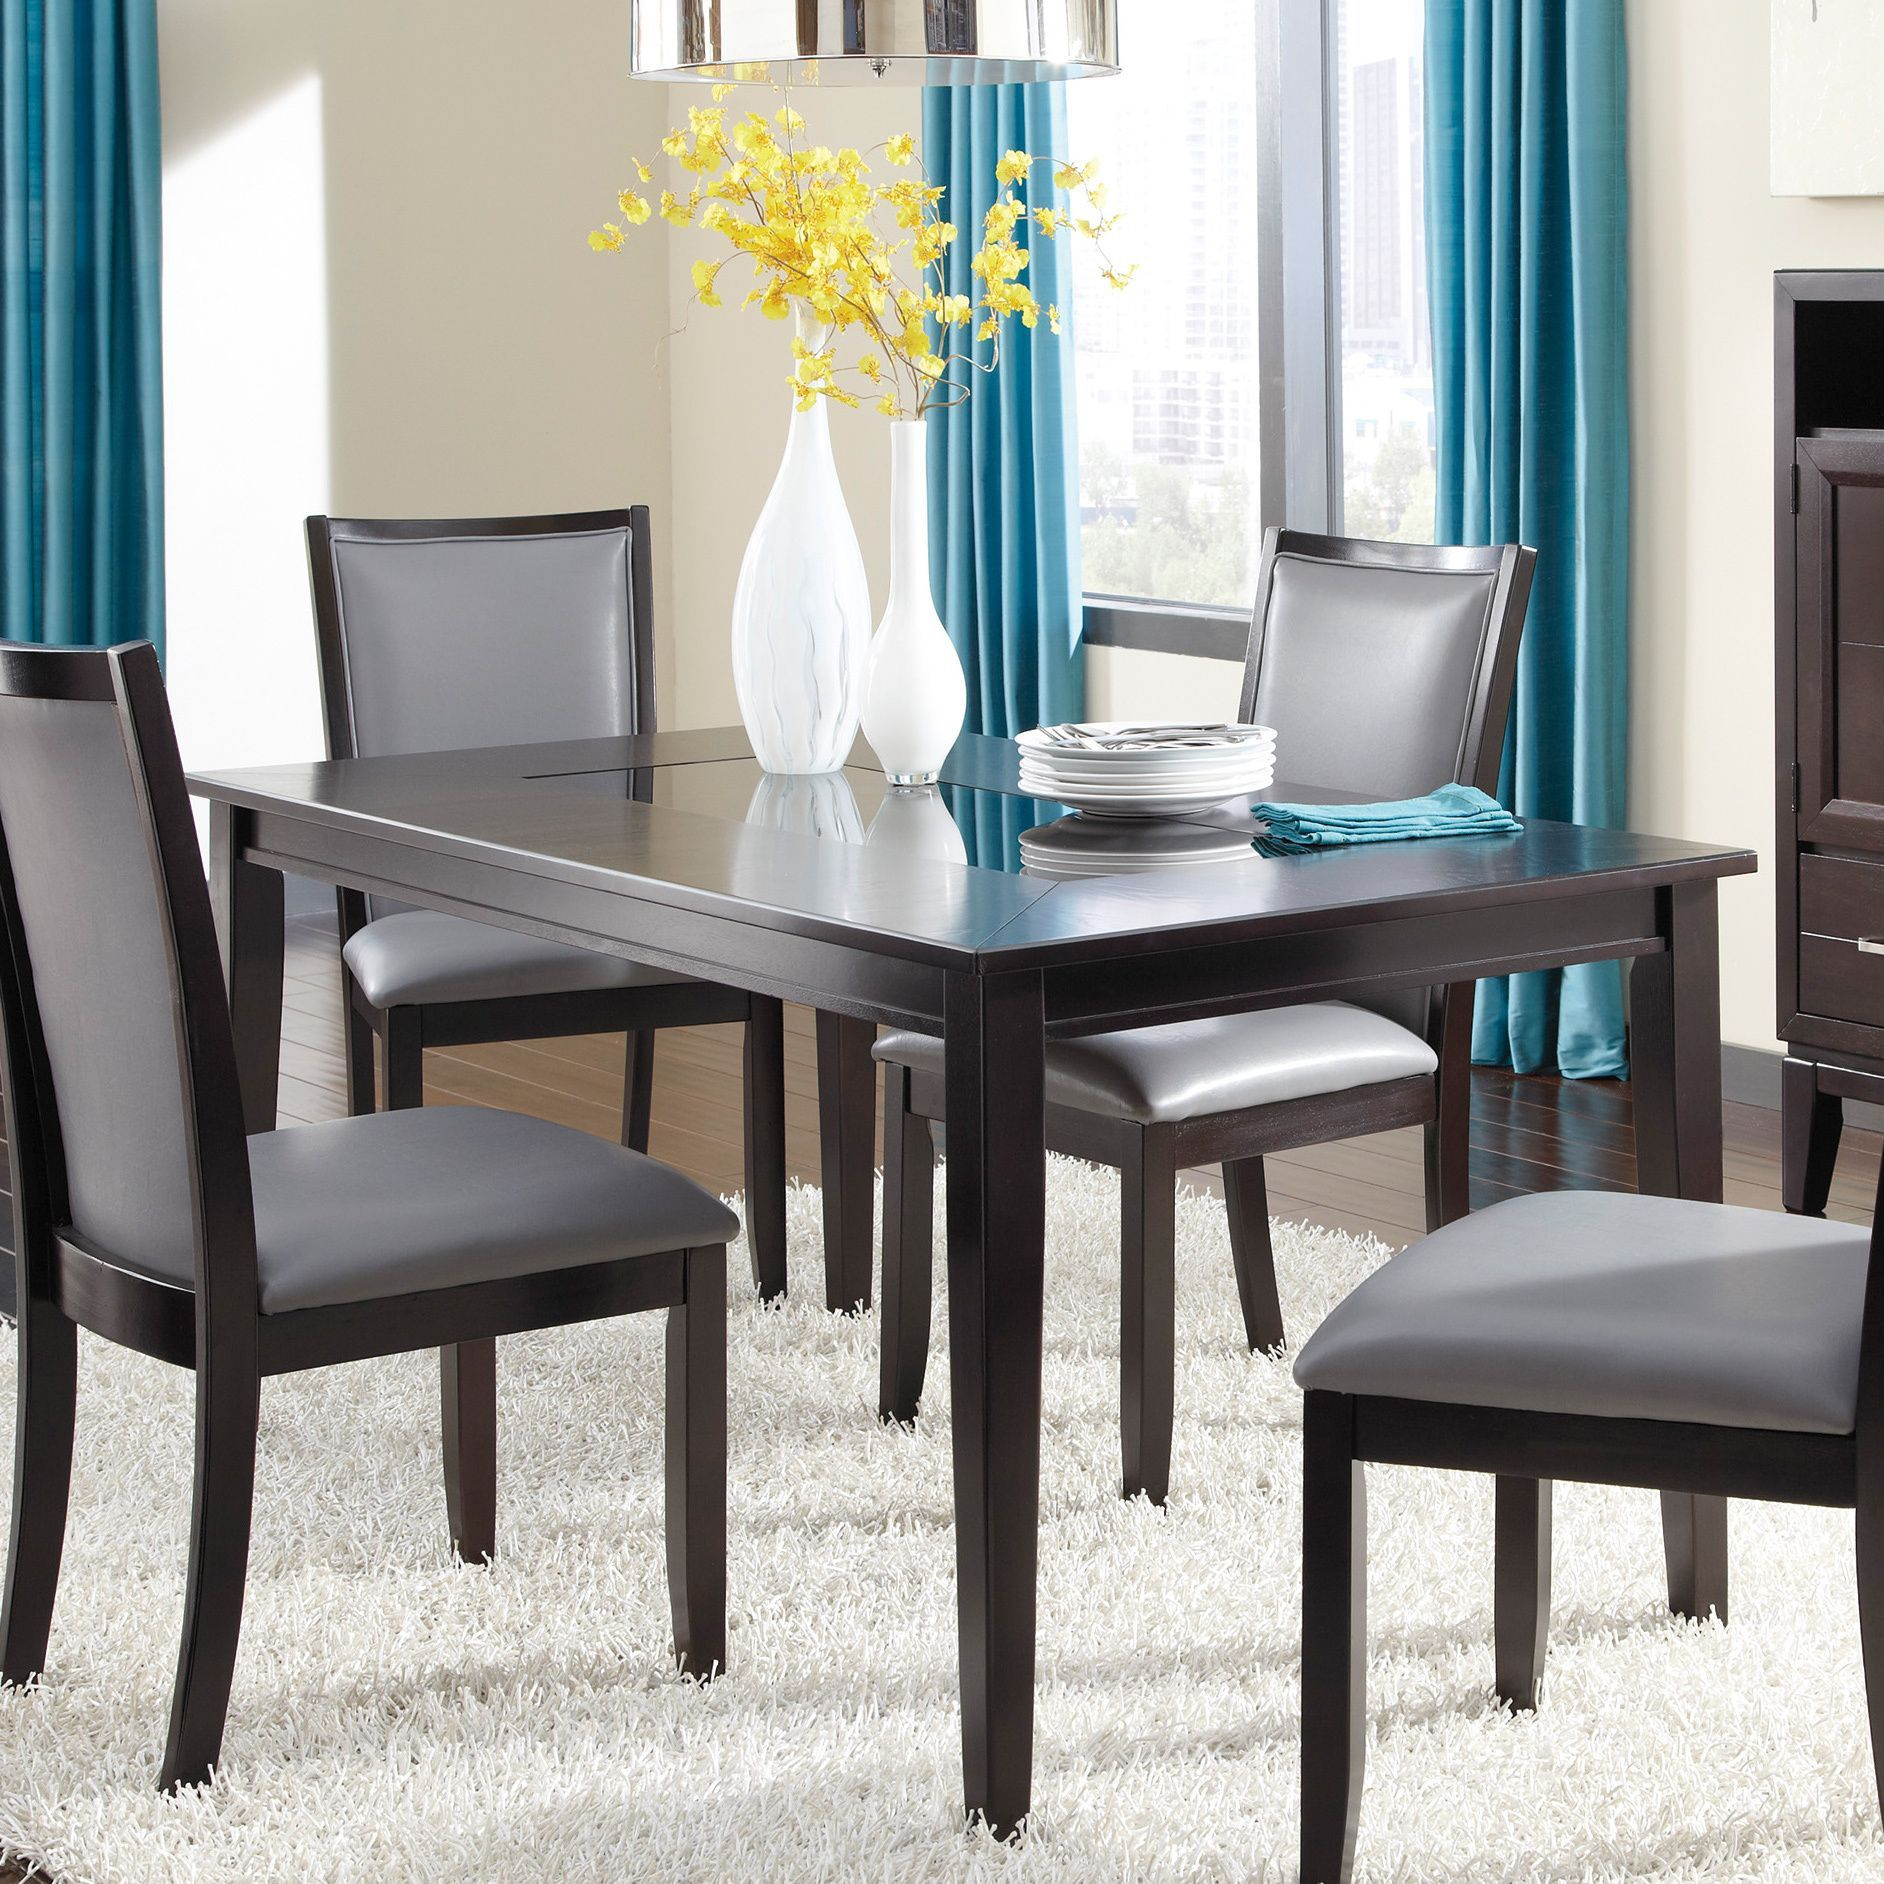 Bring Contemporary Style To Your Dining Room With The Trishelle Rectangular Table Featuring A Black Glass Top Insert Designed By Ashley Furniture This